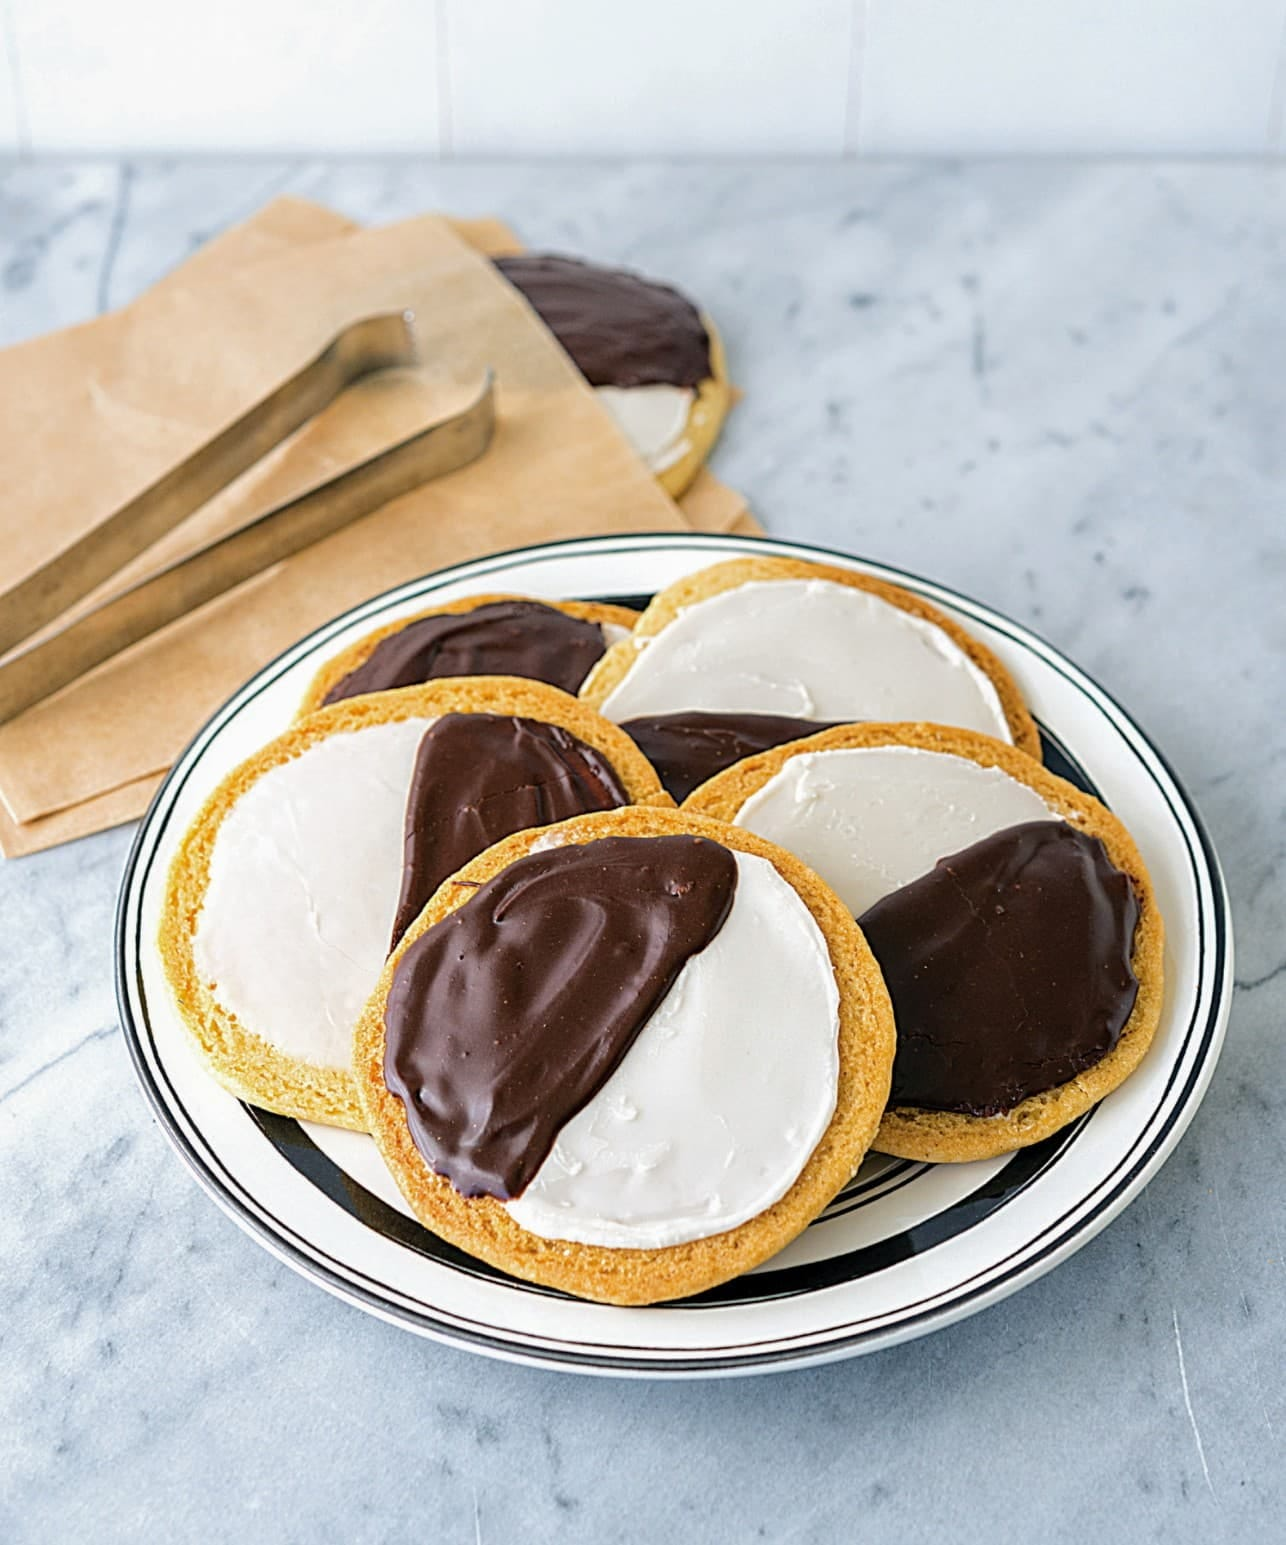 Black and White cookies are a hit among New York City vegans. Photo is from Vegan NYC by Michael Suchman and Ethan Ciment.